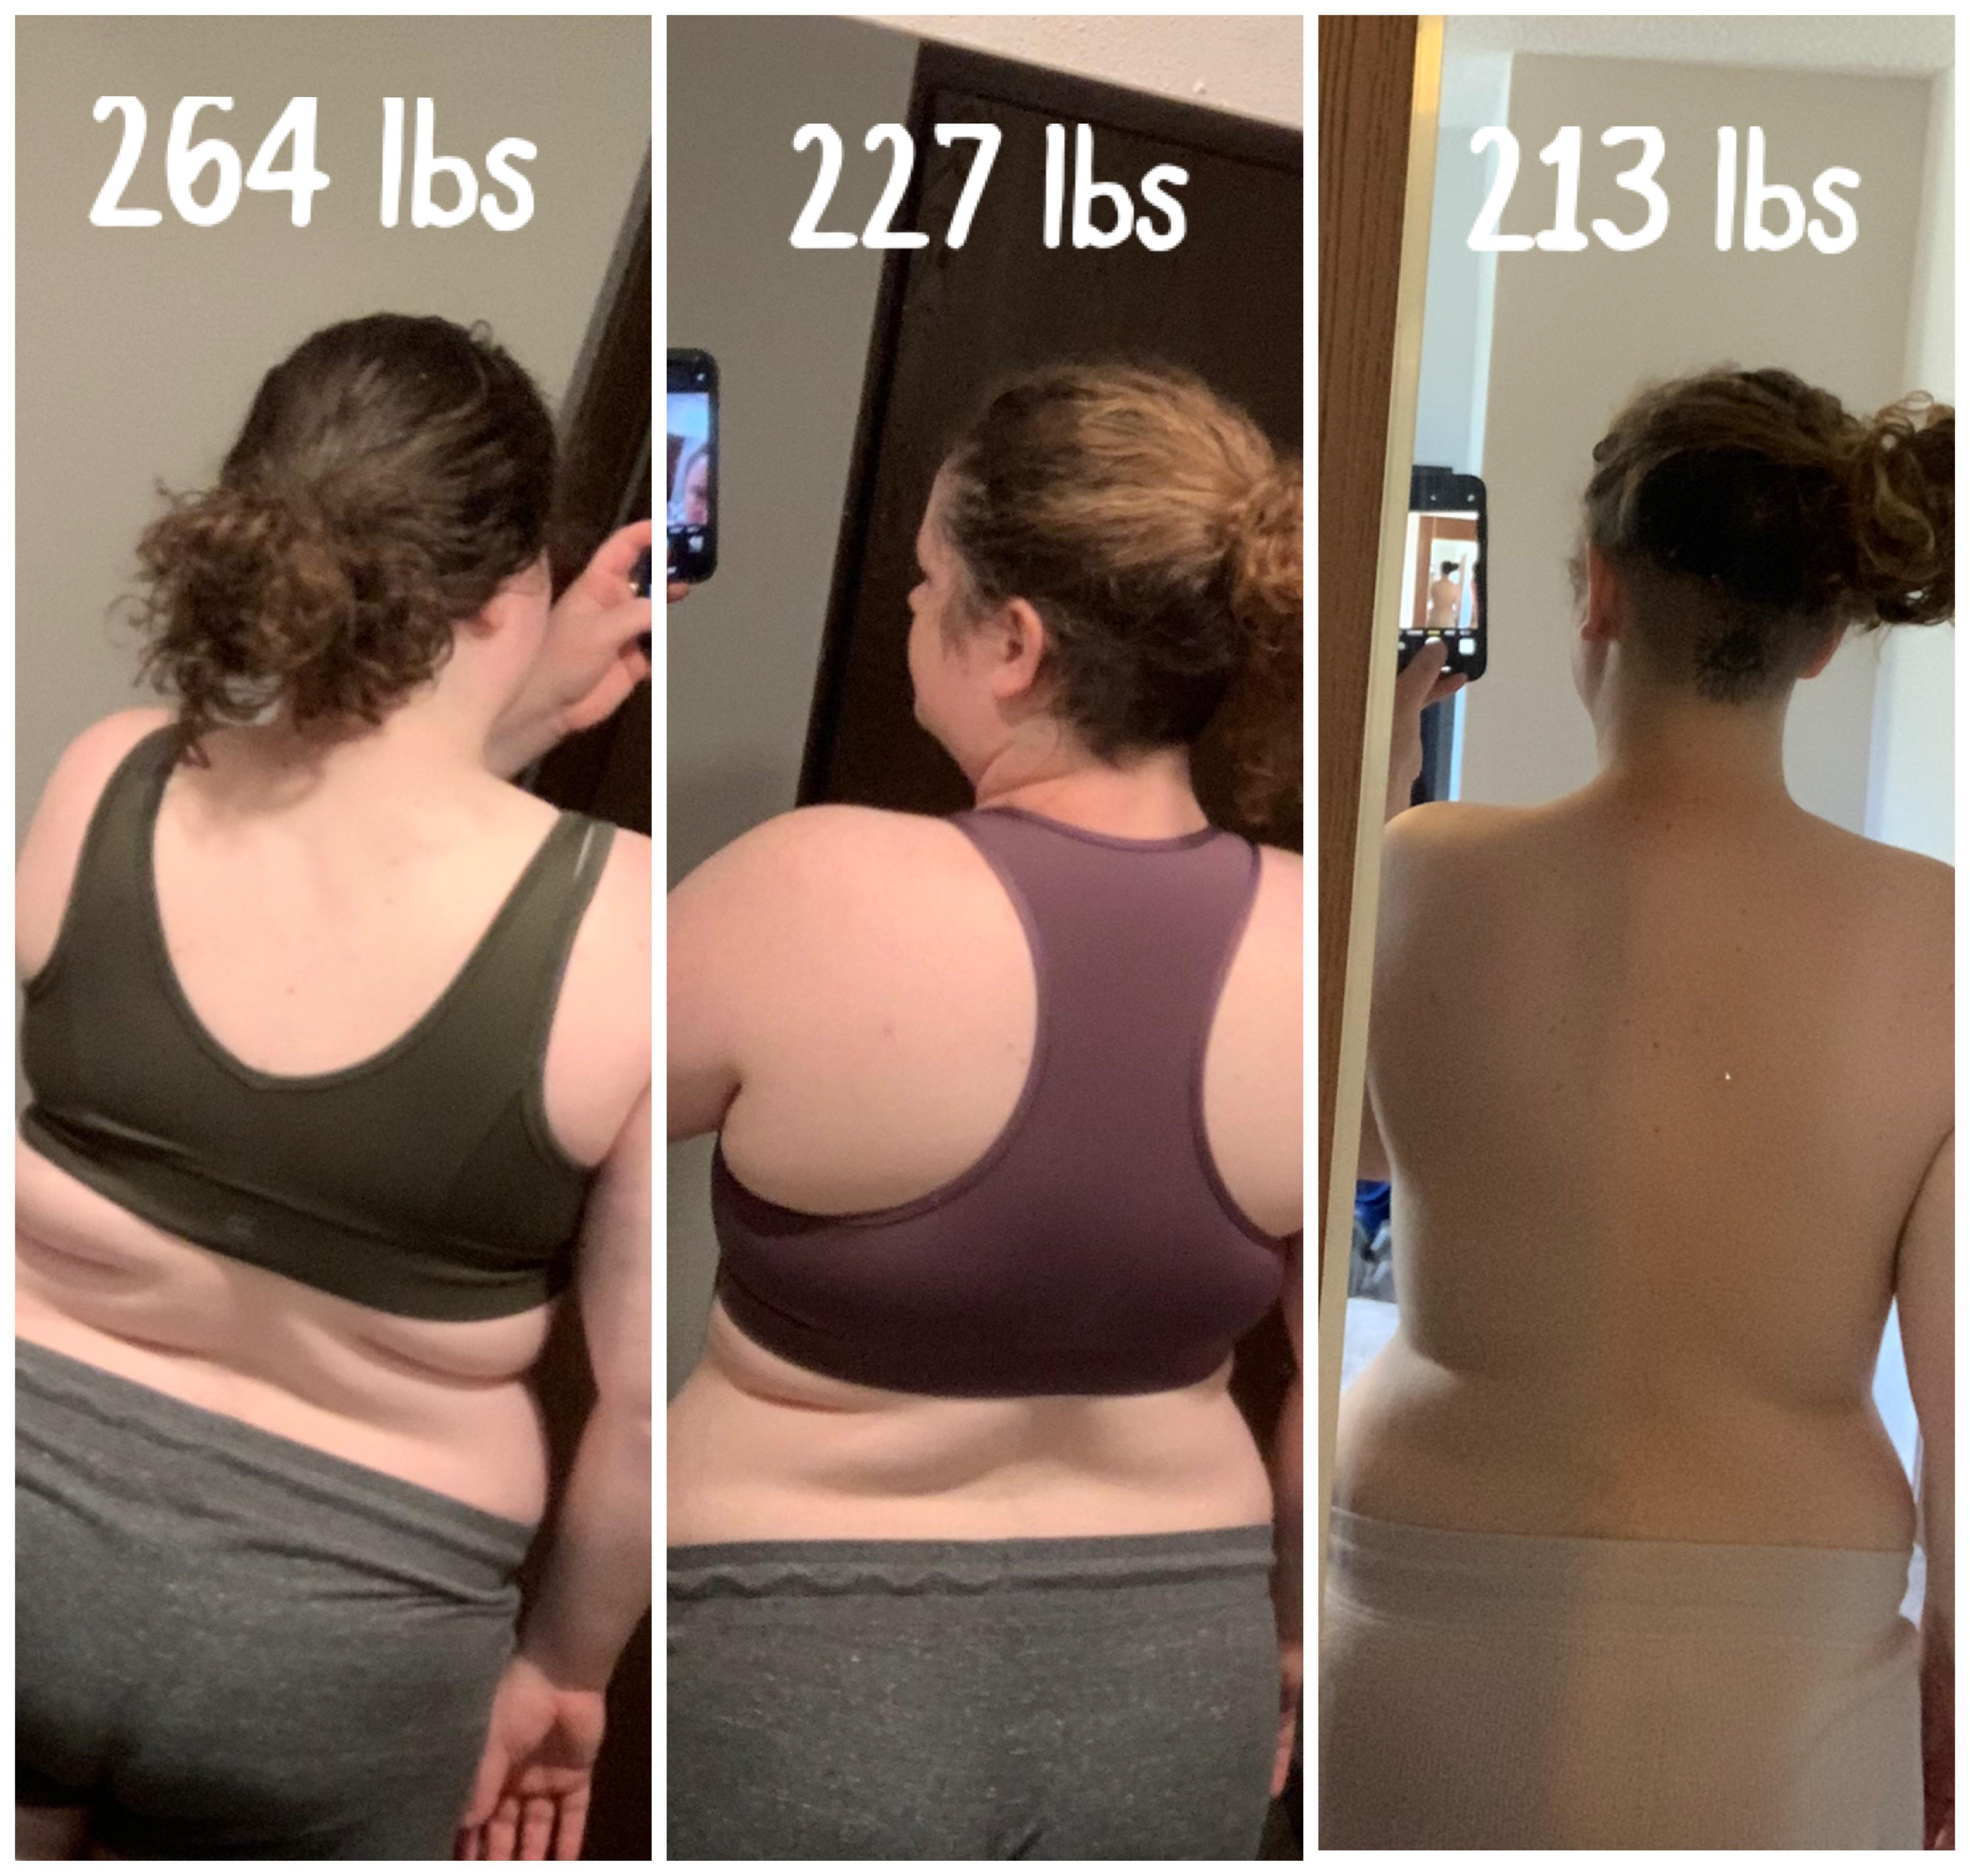 5 foot 7 Female 50 lbs Weight Loss 264 lbs to 214 lbs